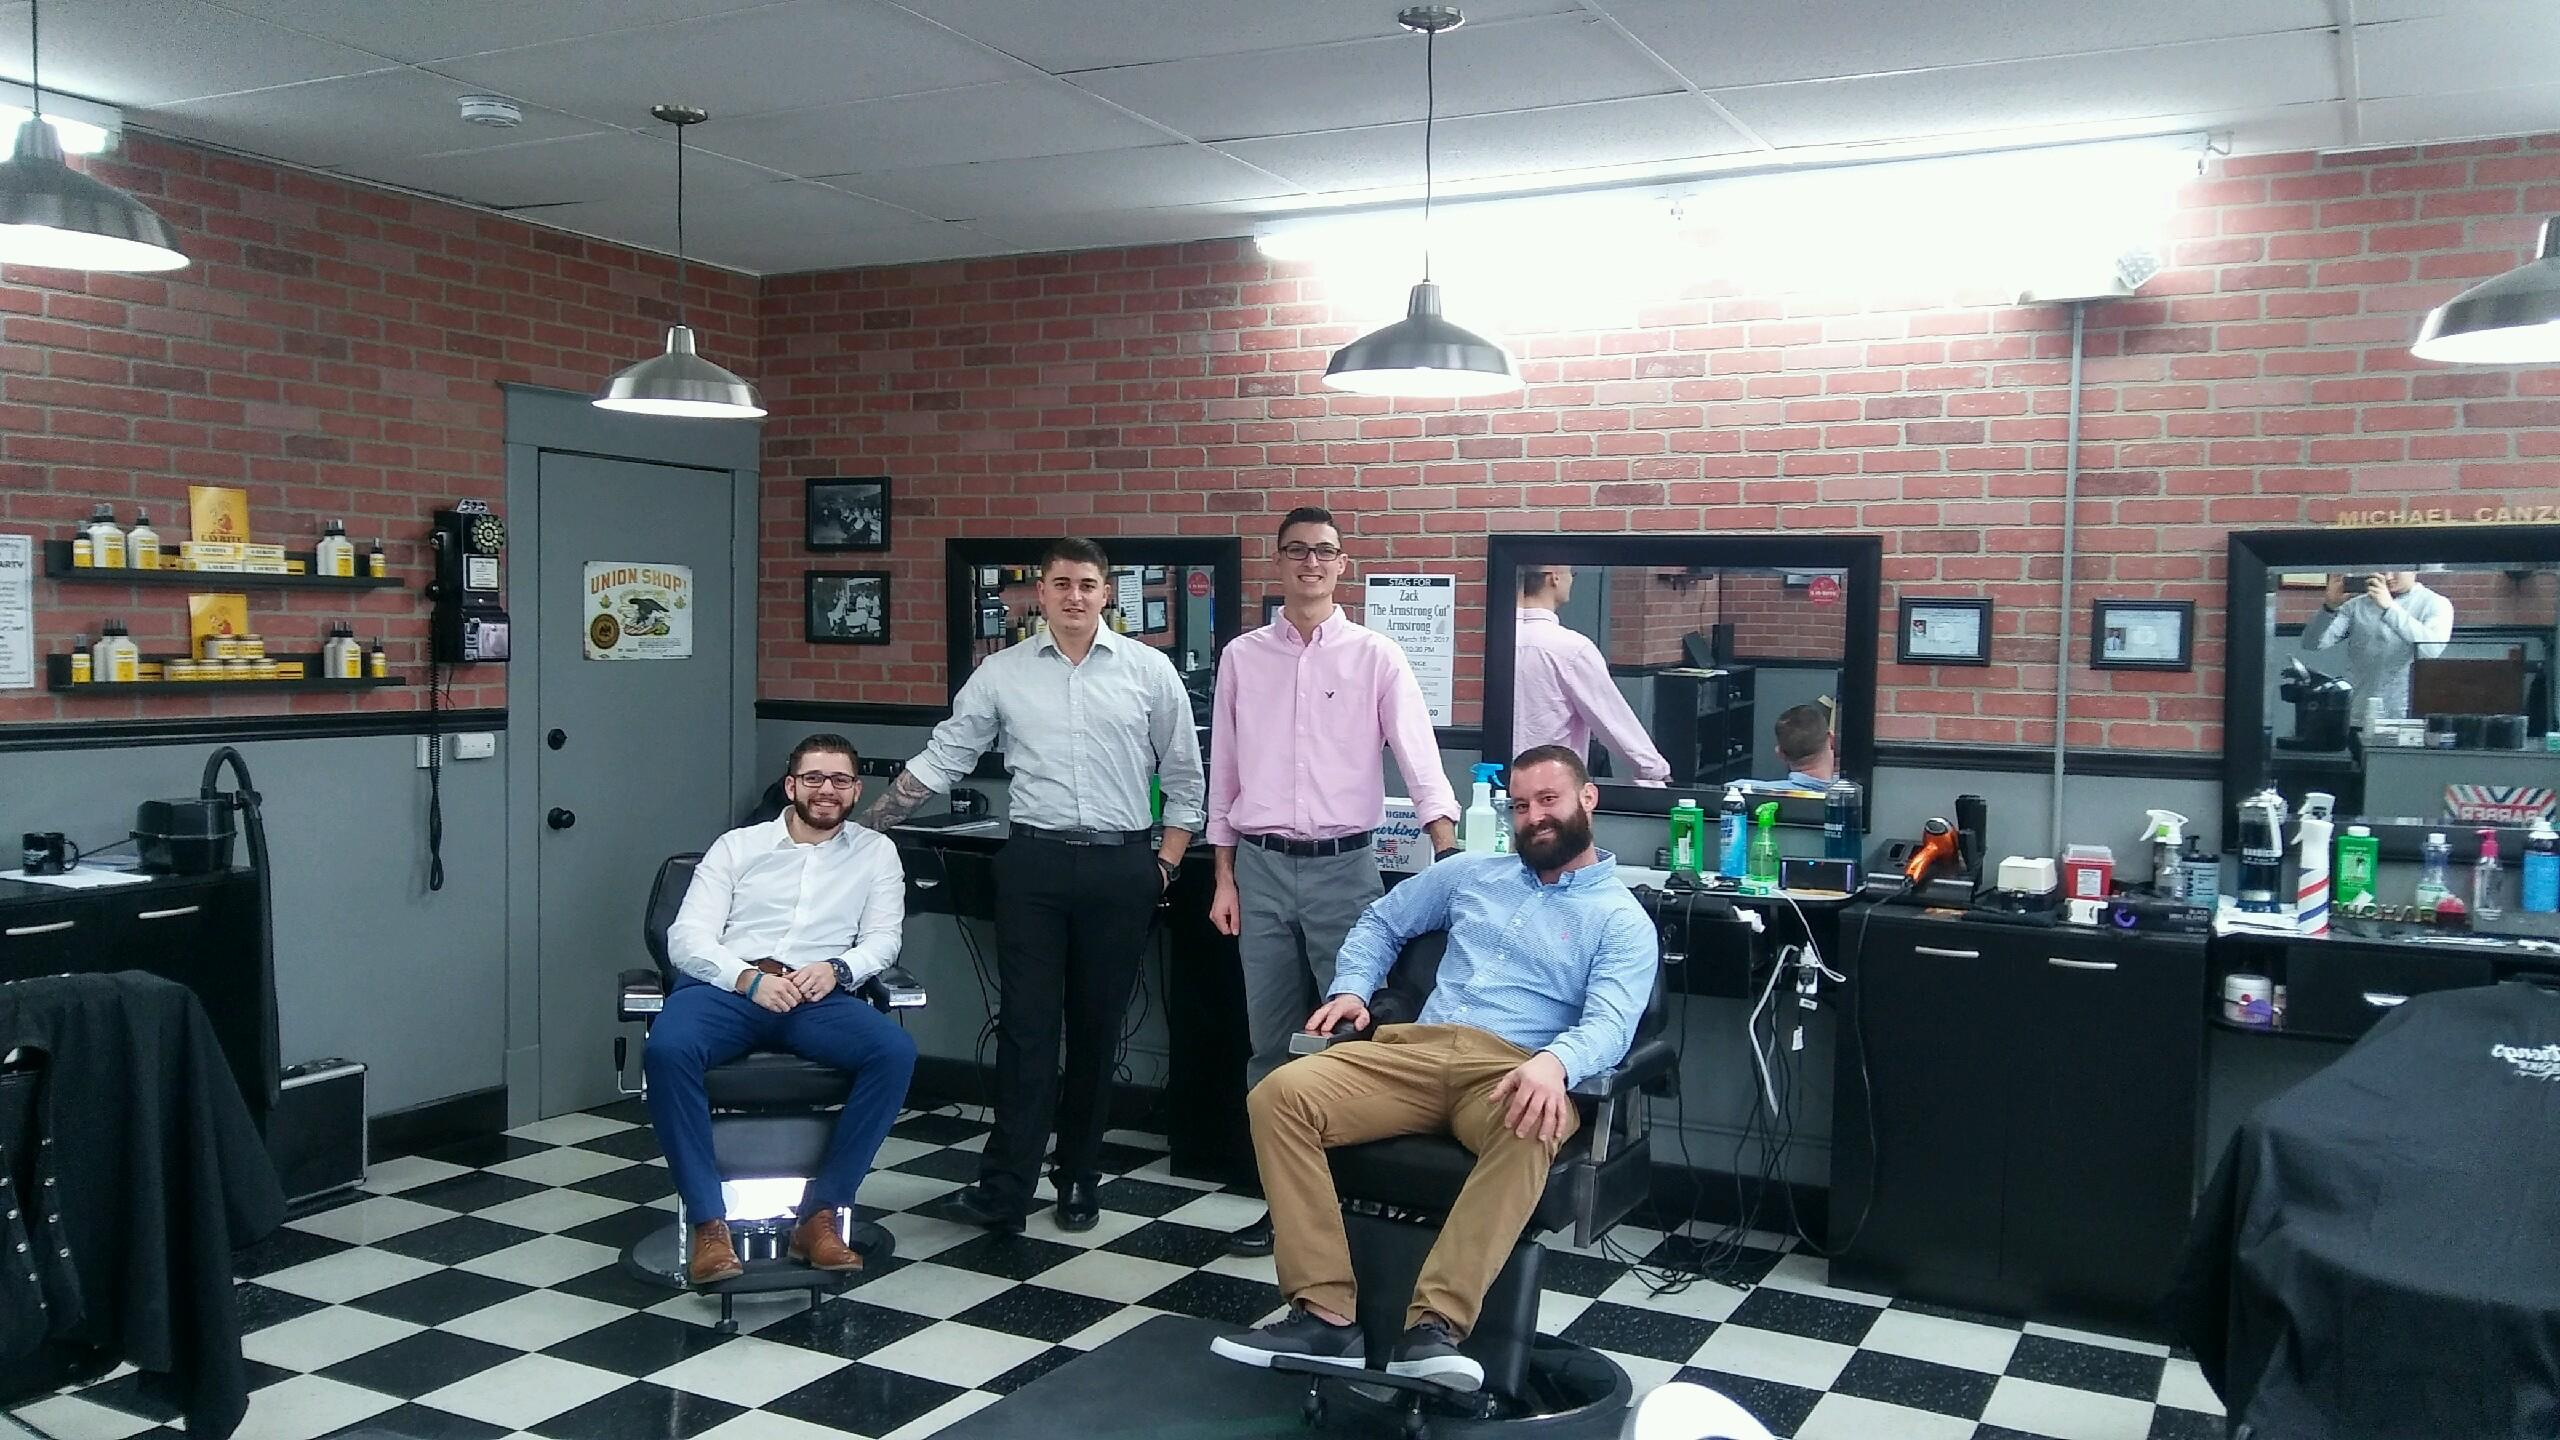 Vinny Caci, Joe Canzoneri, Michael Canzoneri and Zach Armstrong are master barbers. (Contributed photo)